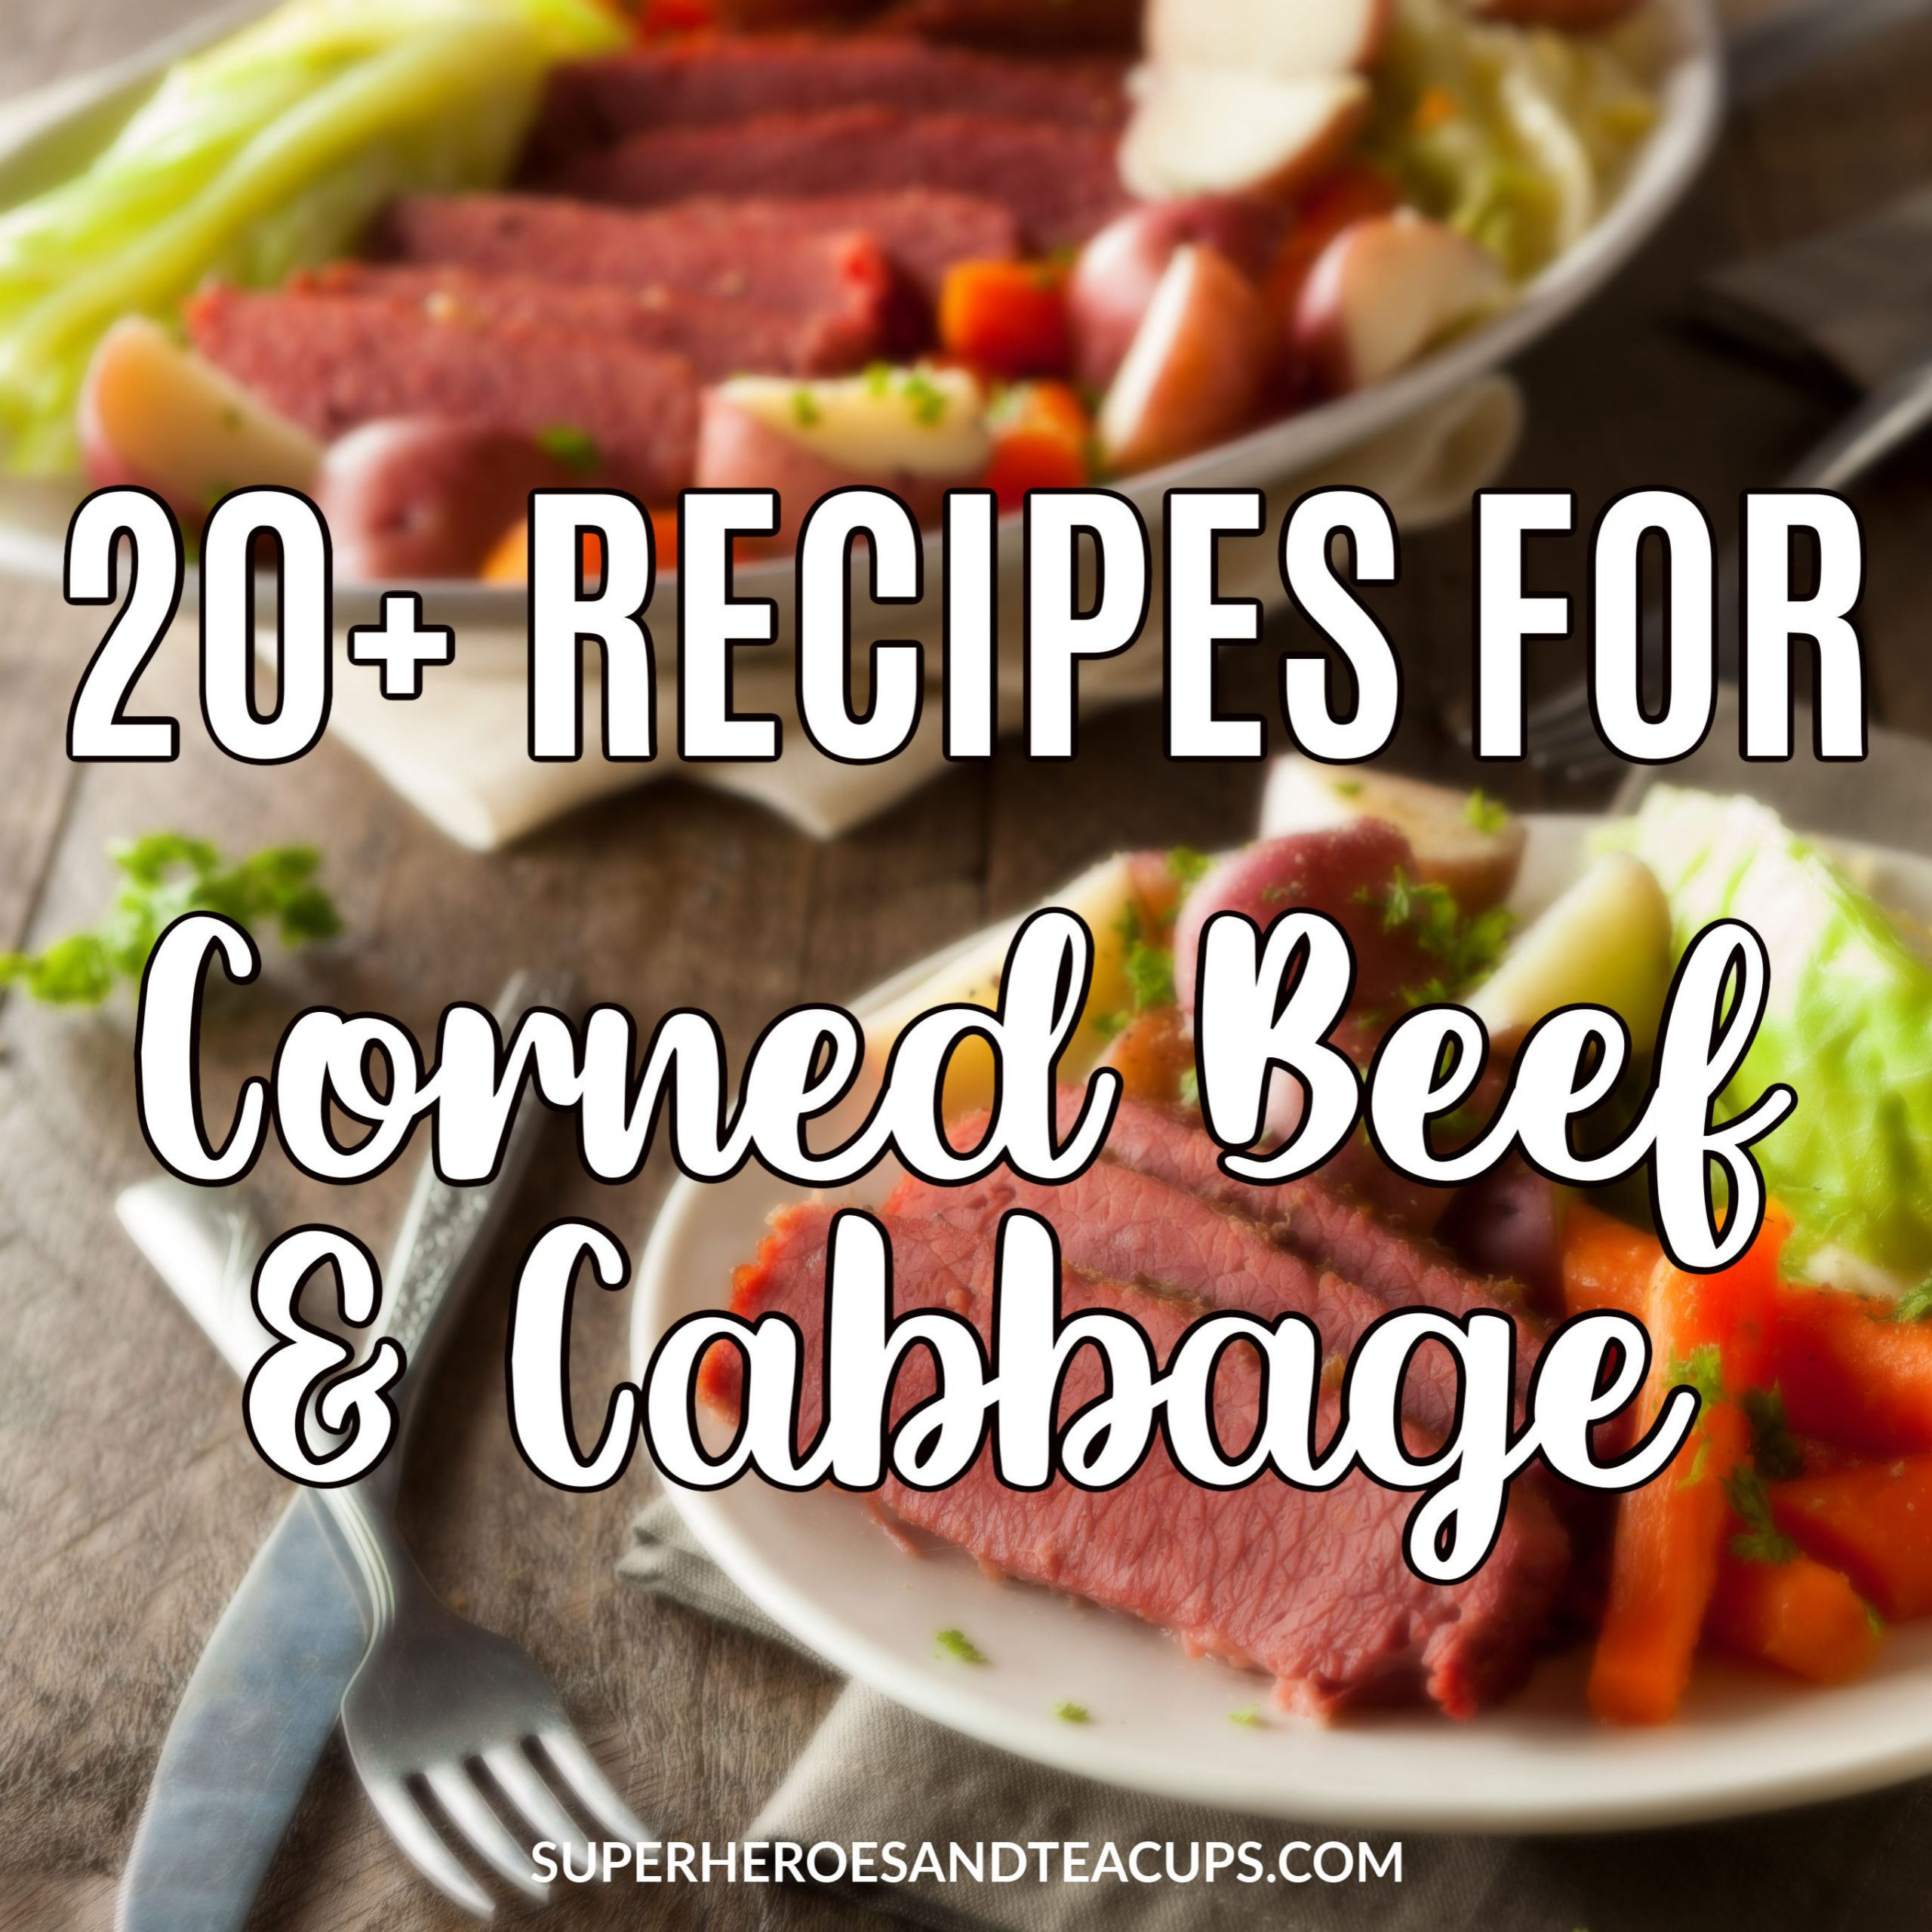 Recipes for leftover corned beef and cabbage